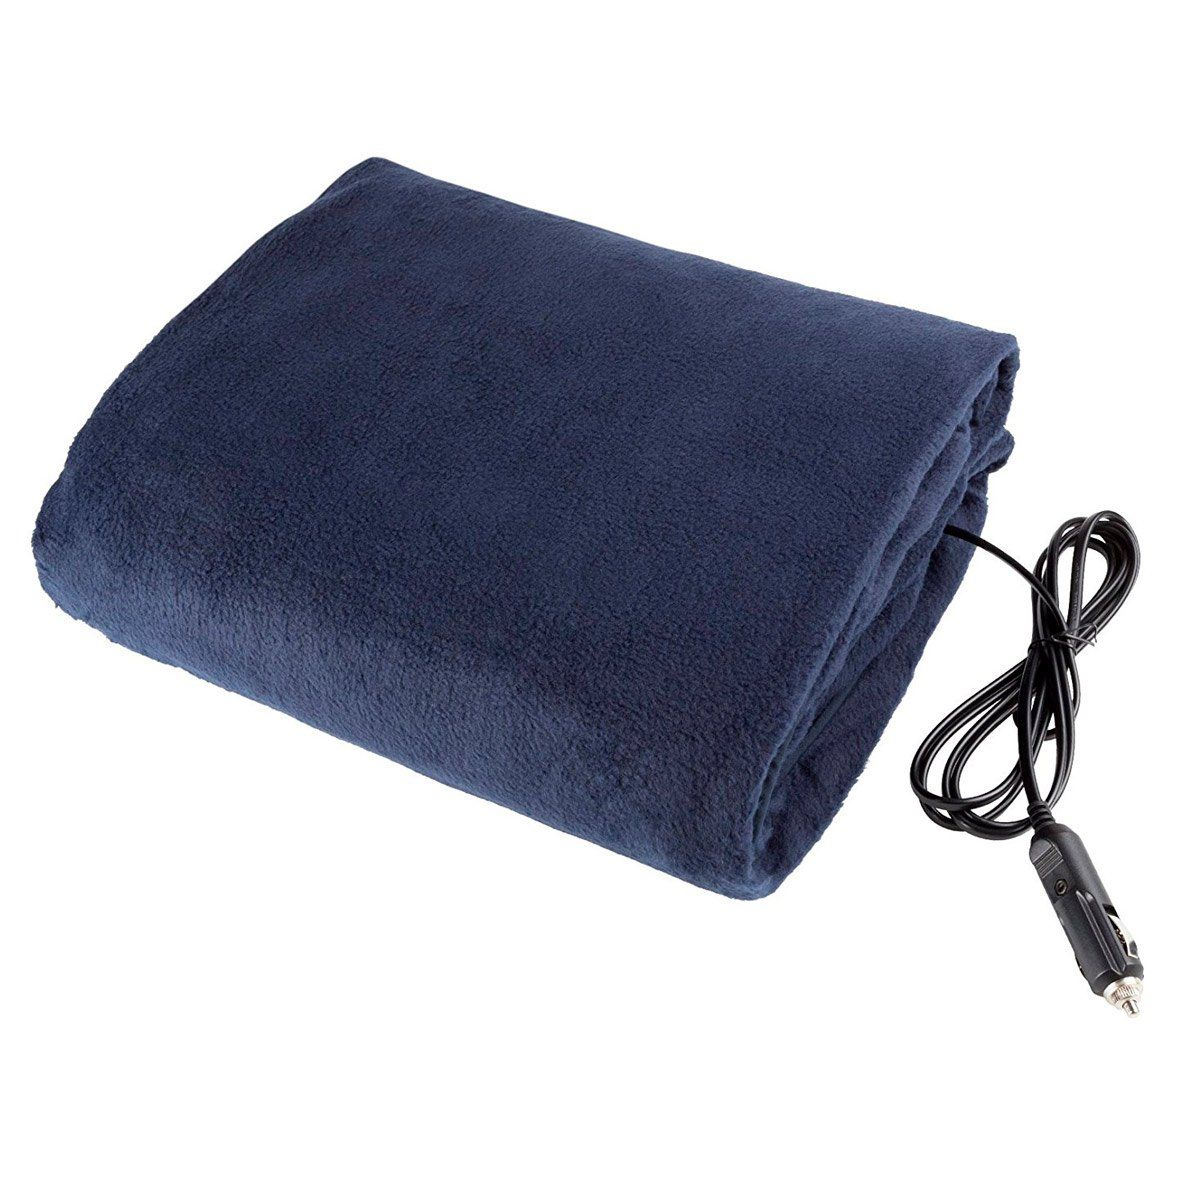 This Car Blanket Will Keep You Warm Even If Don T Have Heated Seats